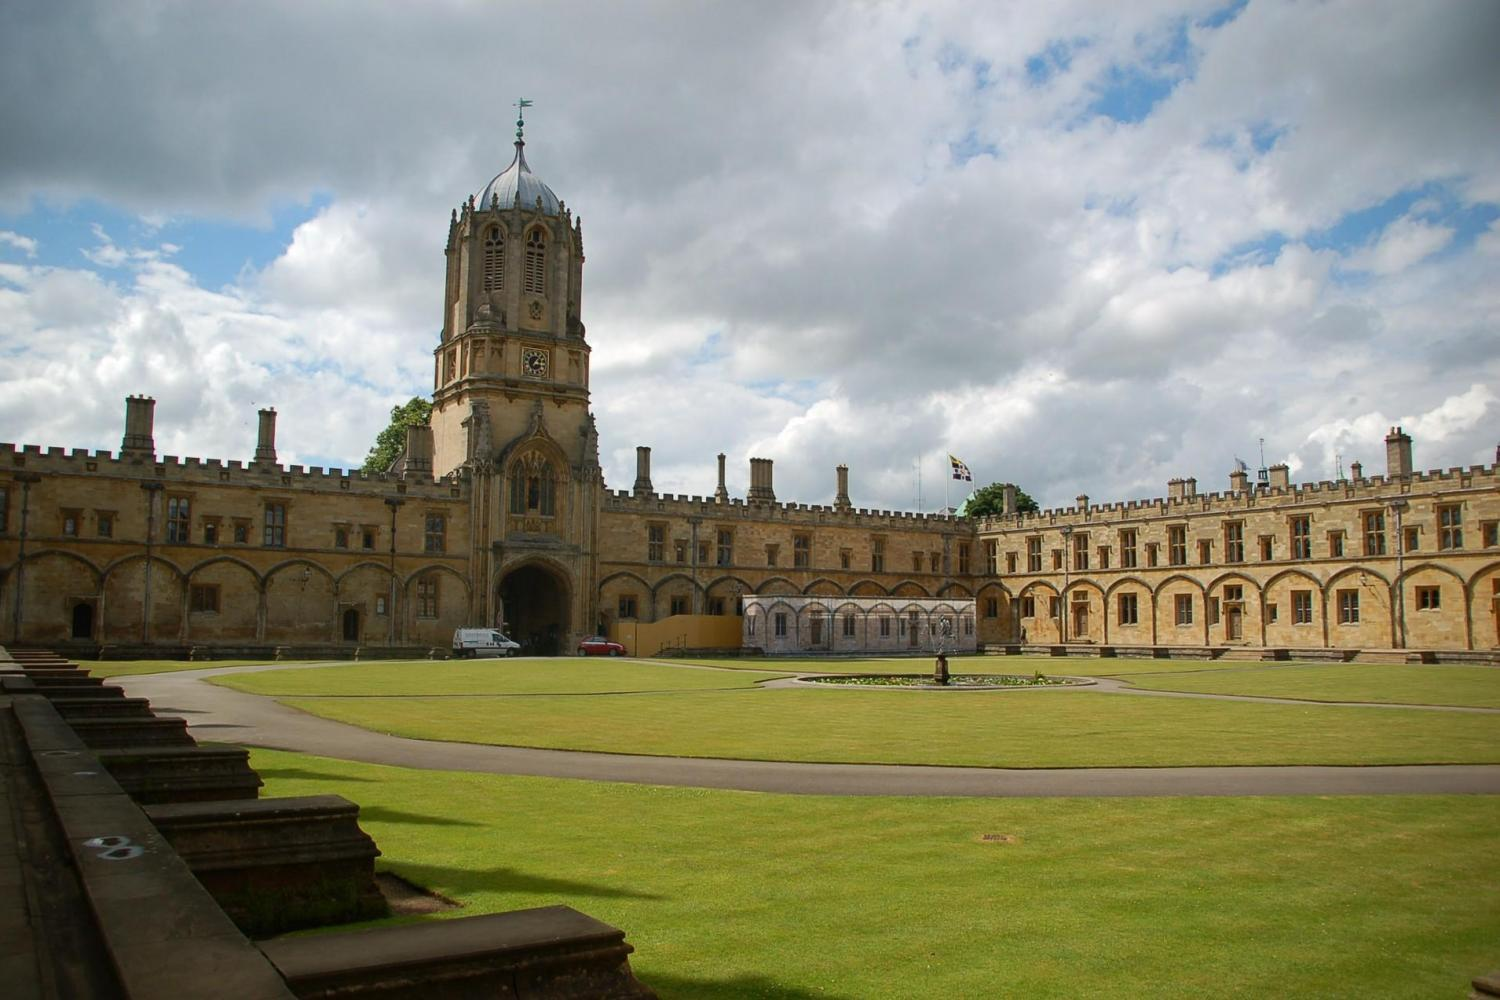 Deluxe Oxford, Stratford, Cotswolds & Warwick Castle Day Trip